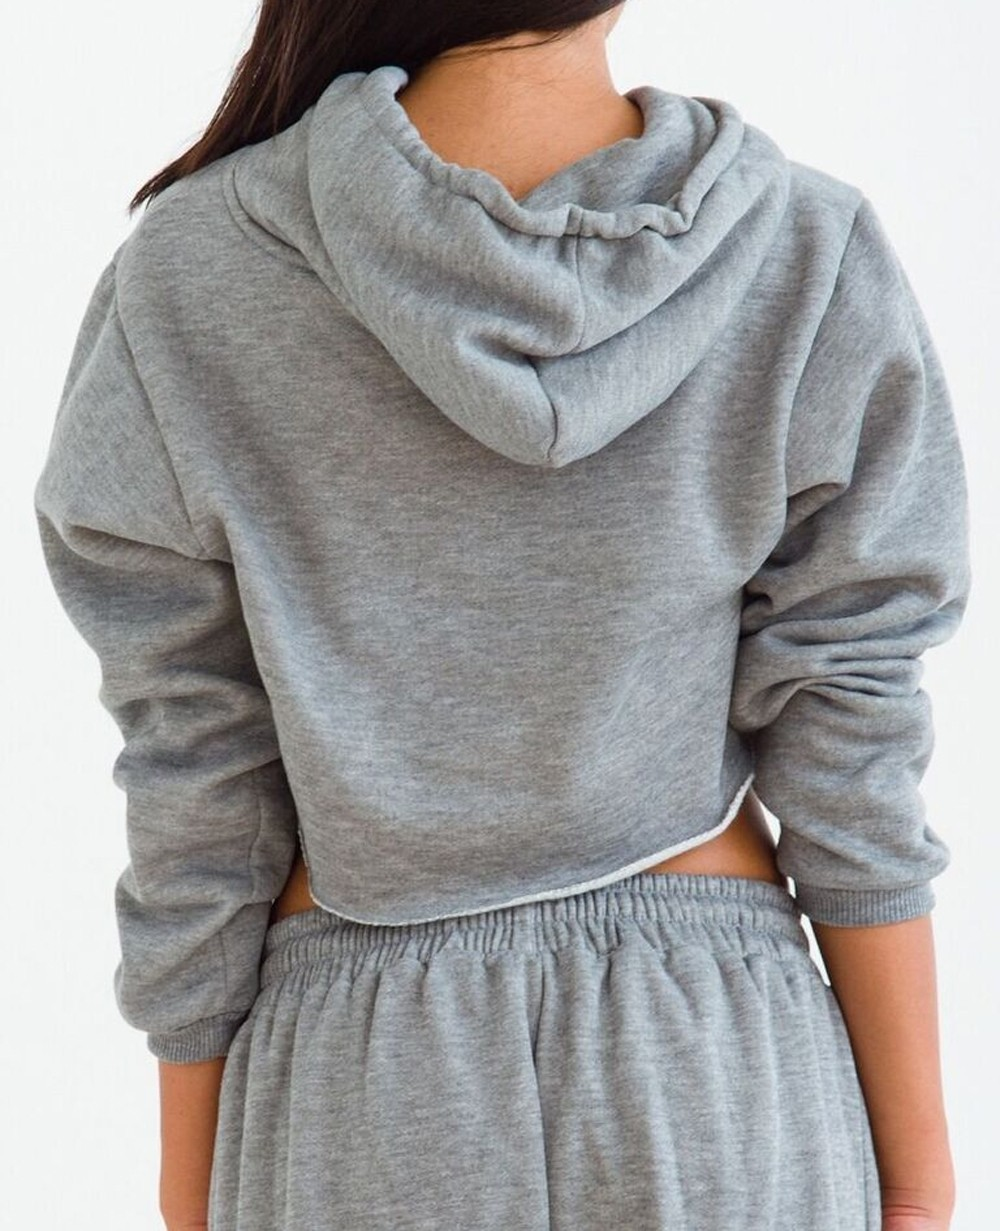 bad3a4acd66 Heather Grey Sweatsuit for Girls, R1-15007